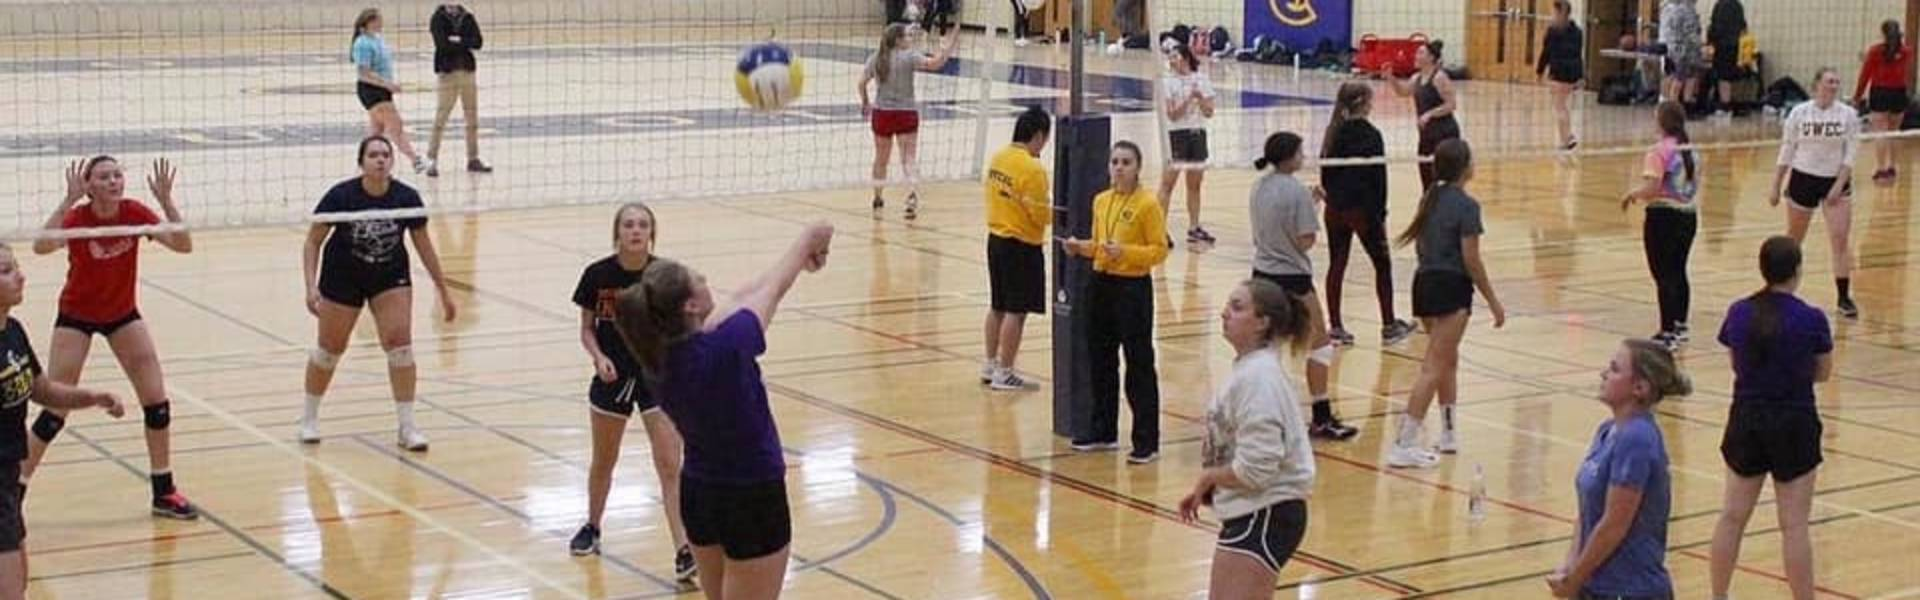 Open Rec Volleyball